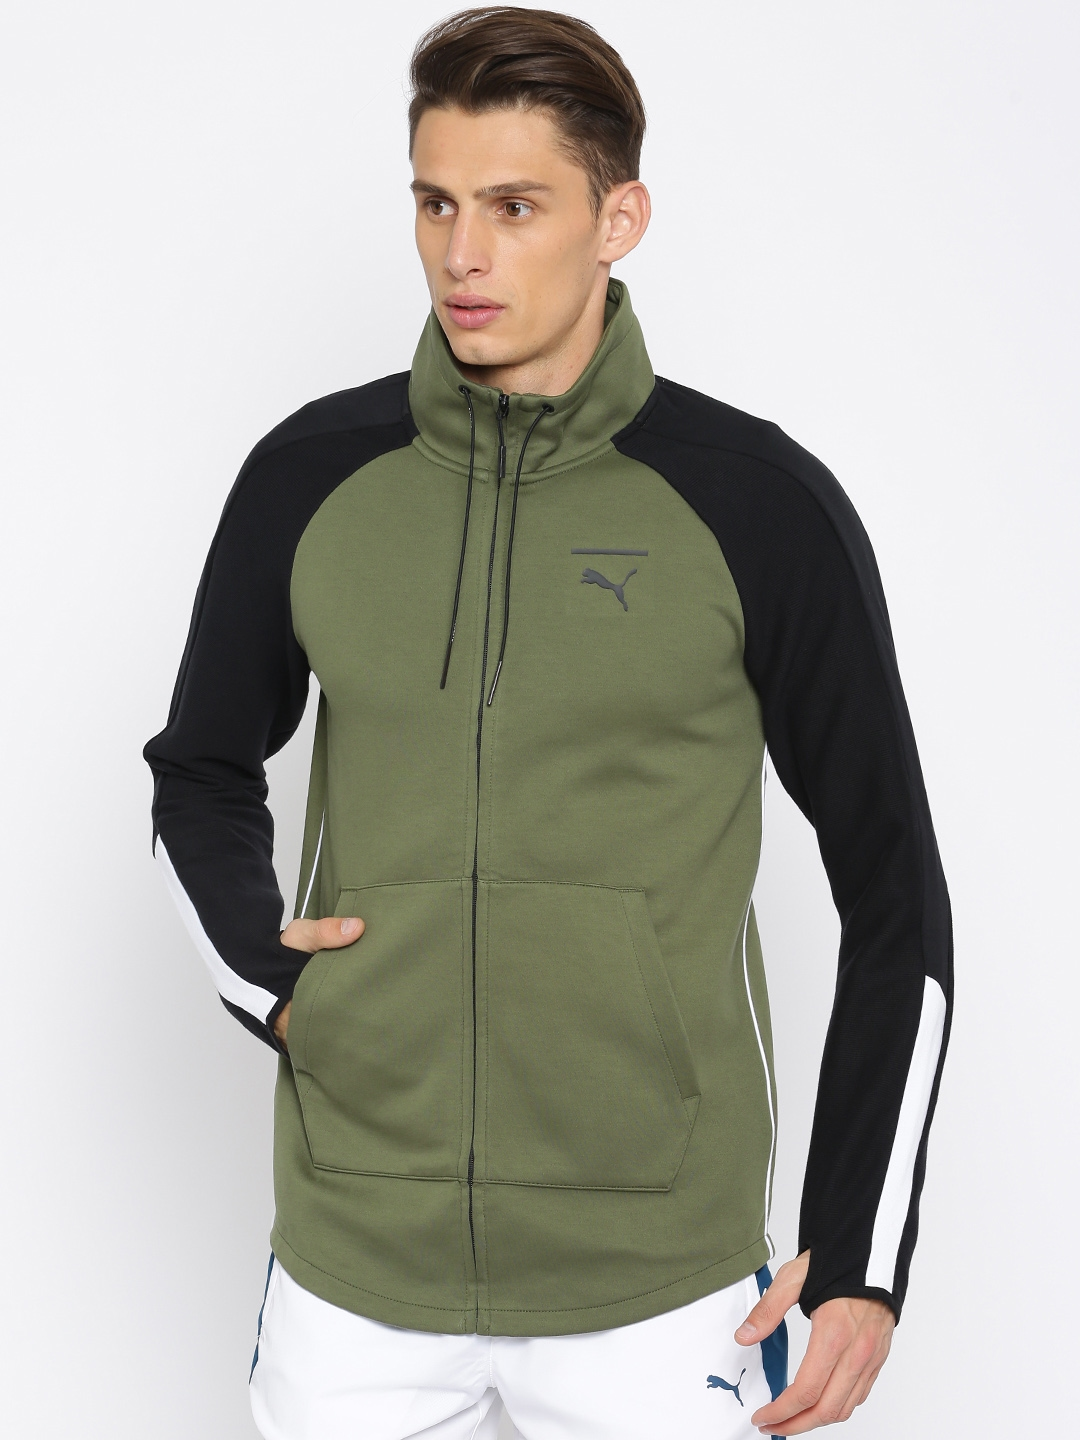 f187a47008b9 Buy Puma Men Olive Green Solid Evo T7 Sporty Jacket - Jackets for ...